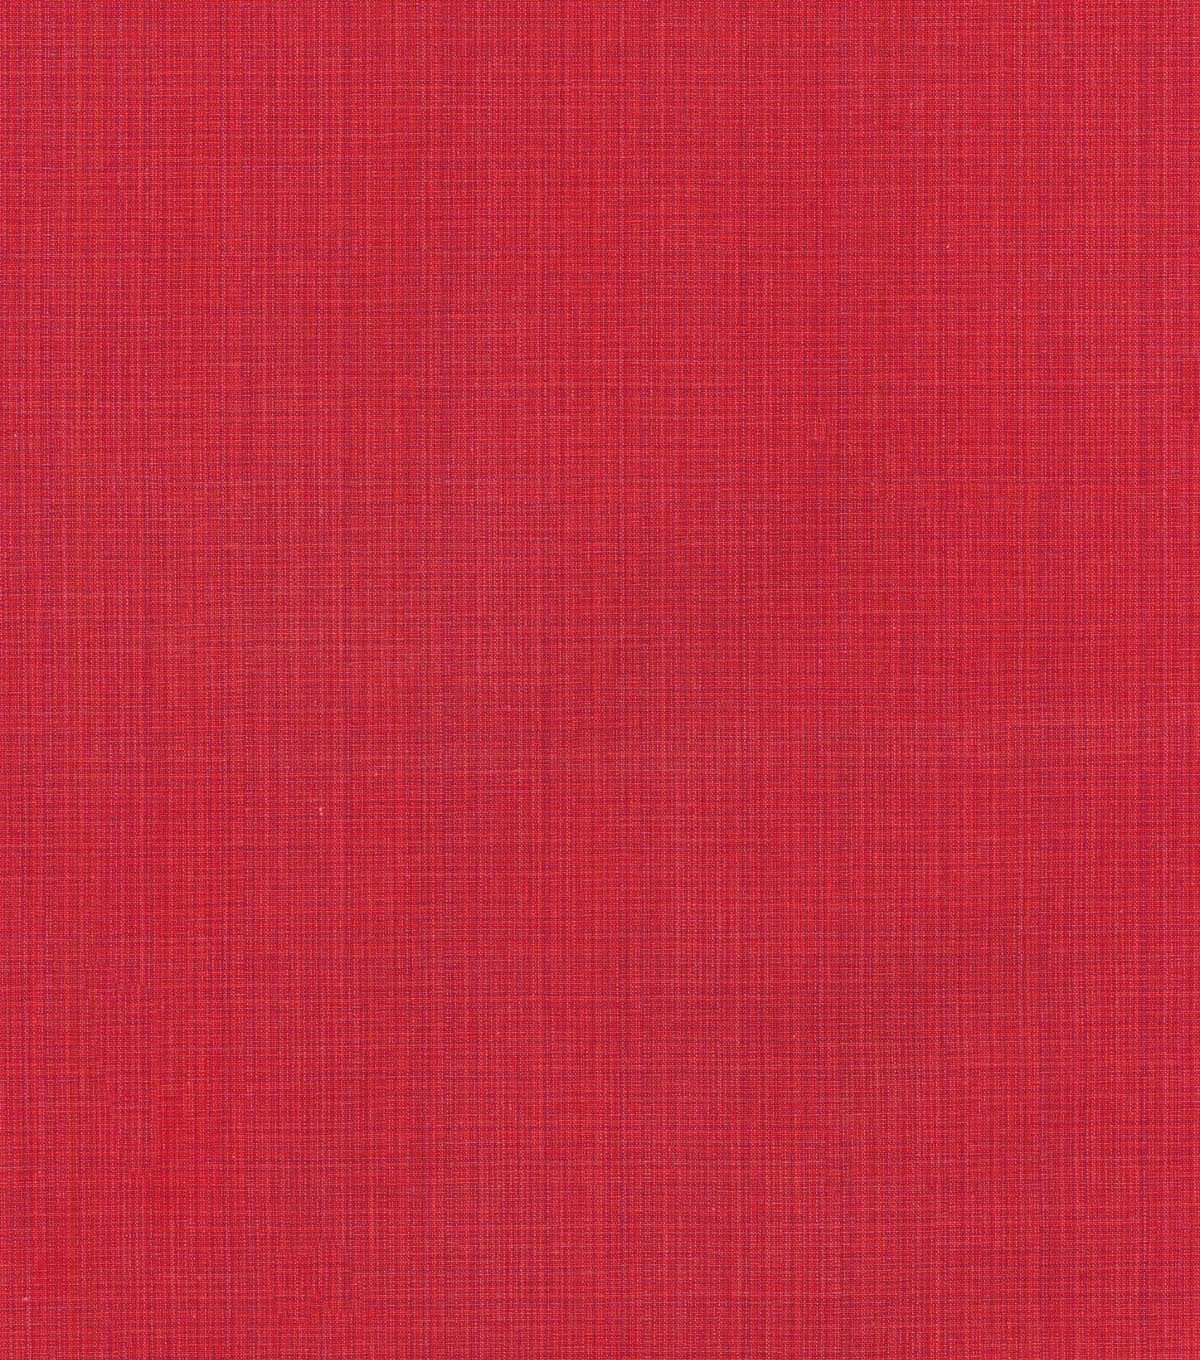 Home Decor 8\u0022x8\u0022 Swatch Fabric-Williamsburg Stratford Strie Jewel